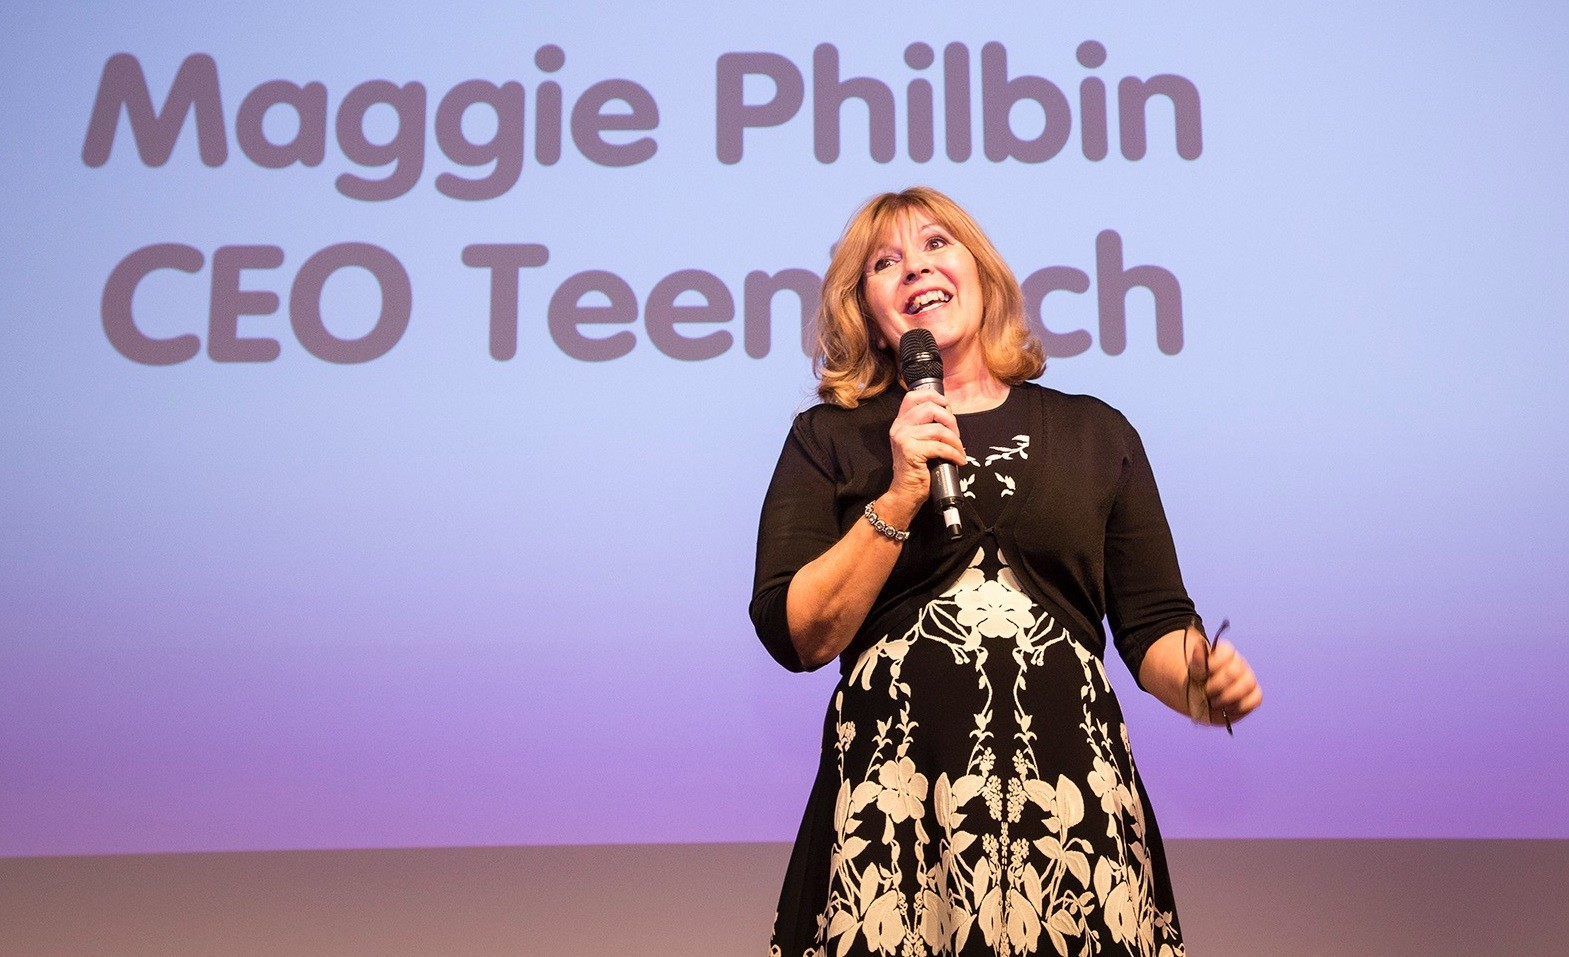 Maggie Philbin, TeenTech Event at MTI